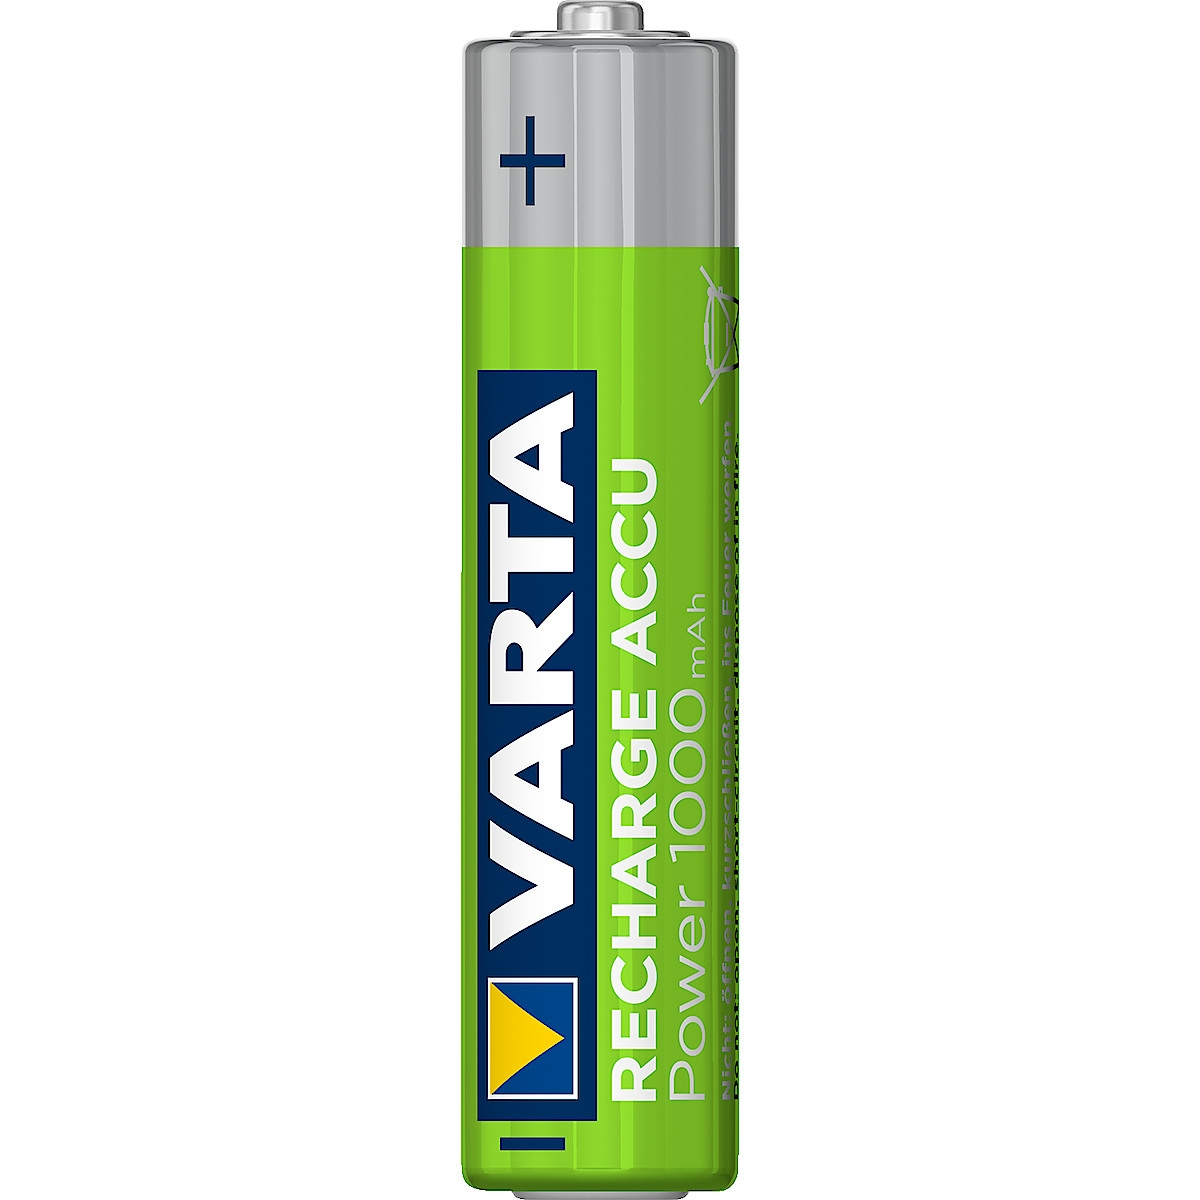 Varta Power ladbart batteri AAA/HR03, 1000 mAh